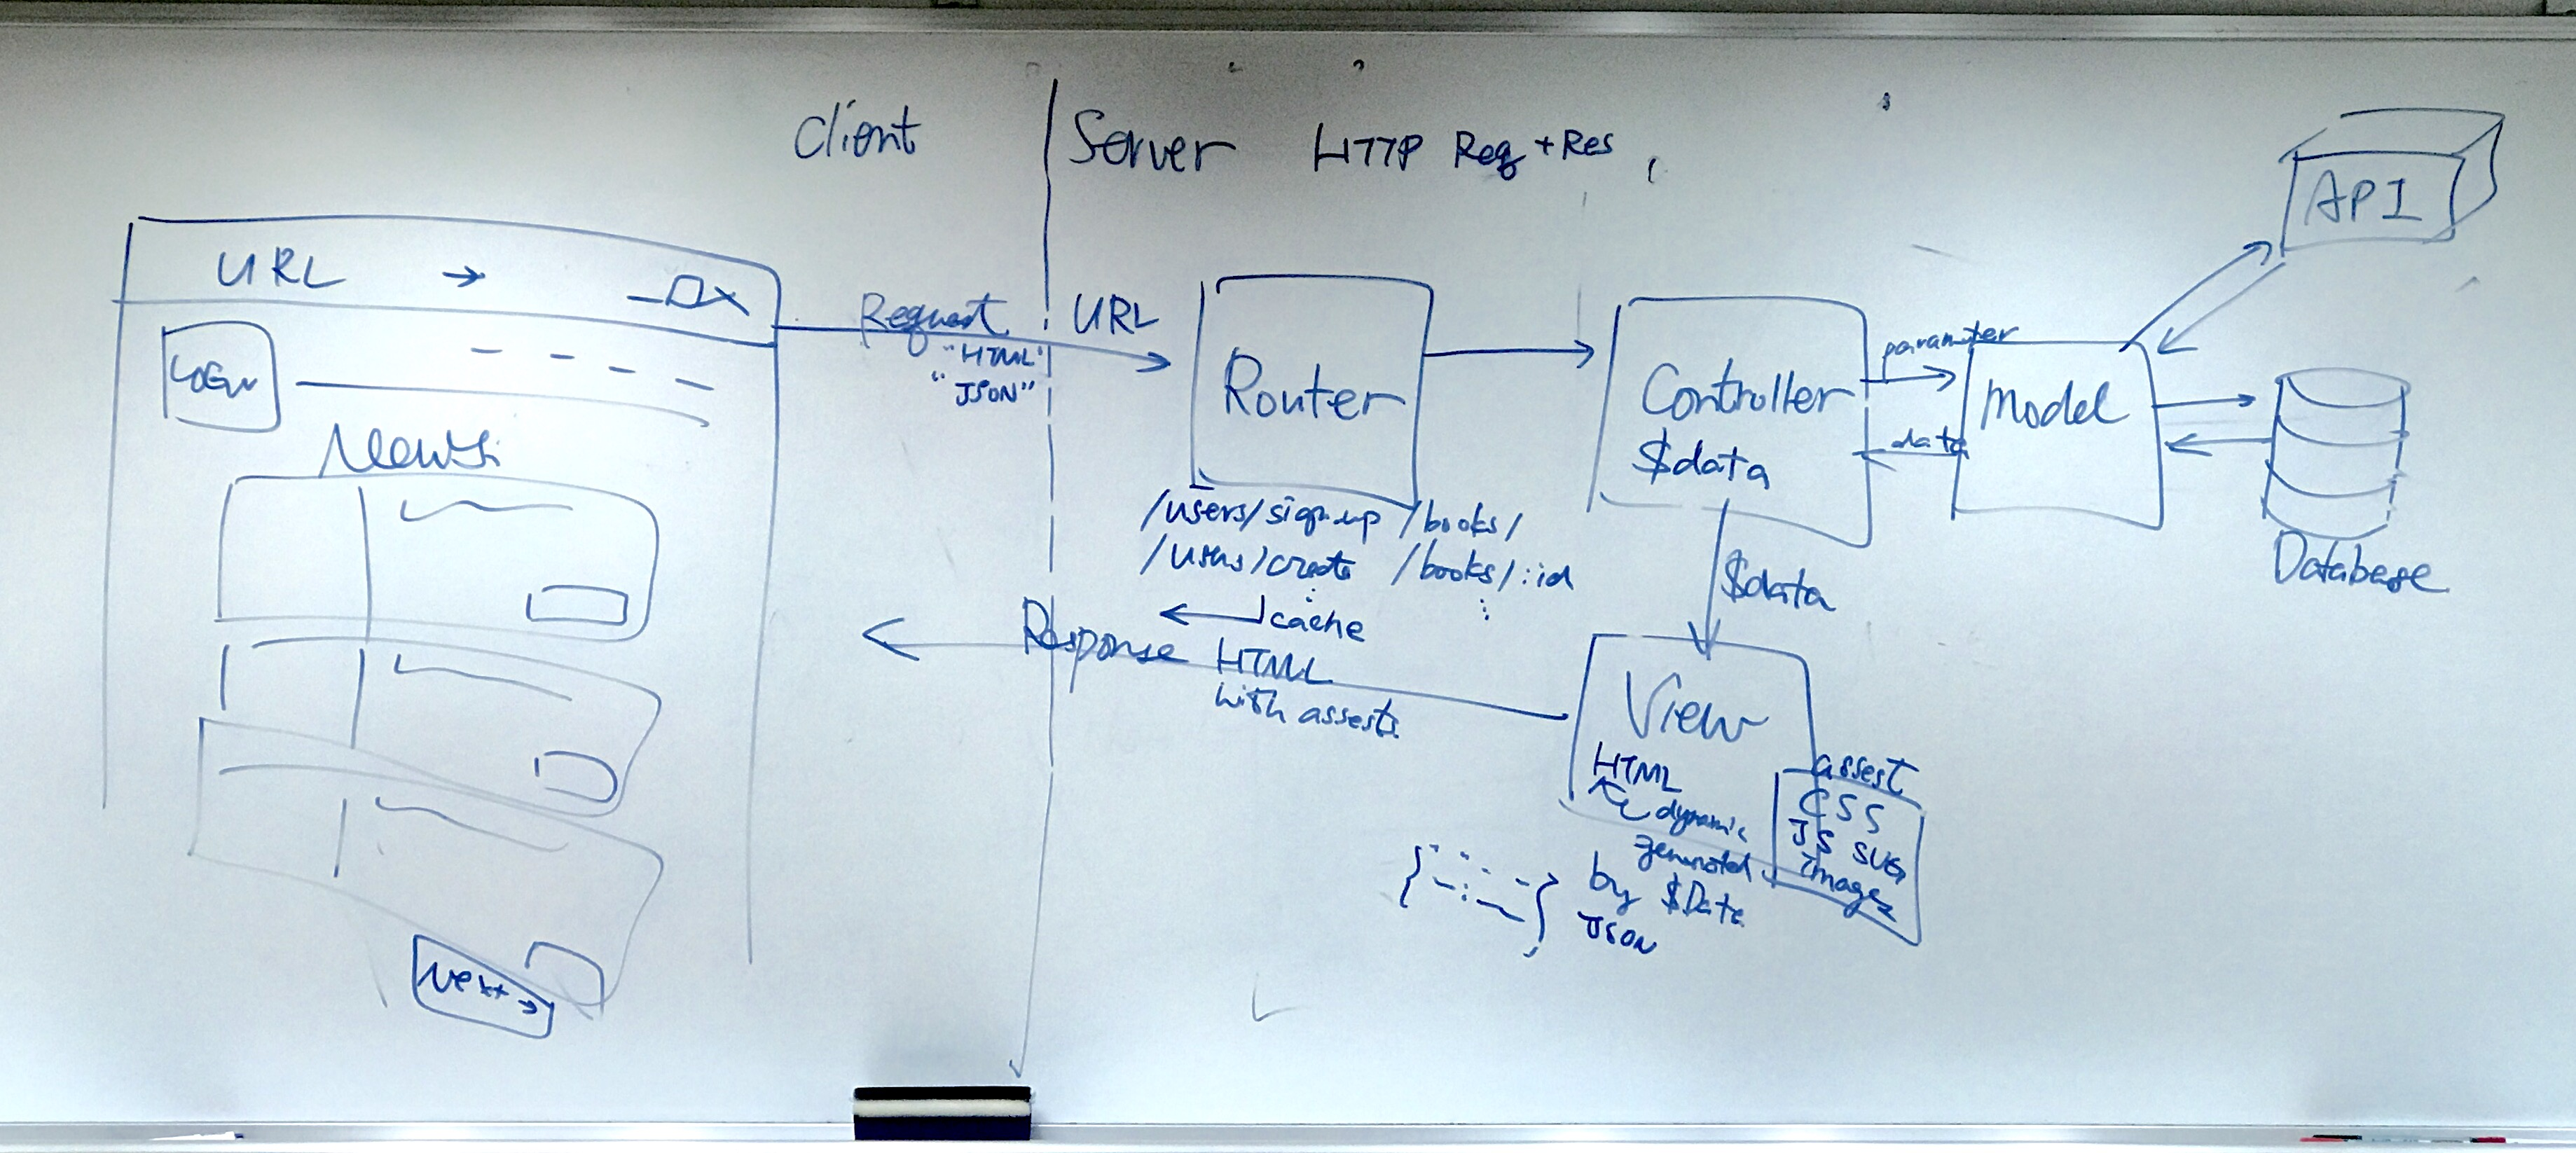 Another web server MVC lecture.